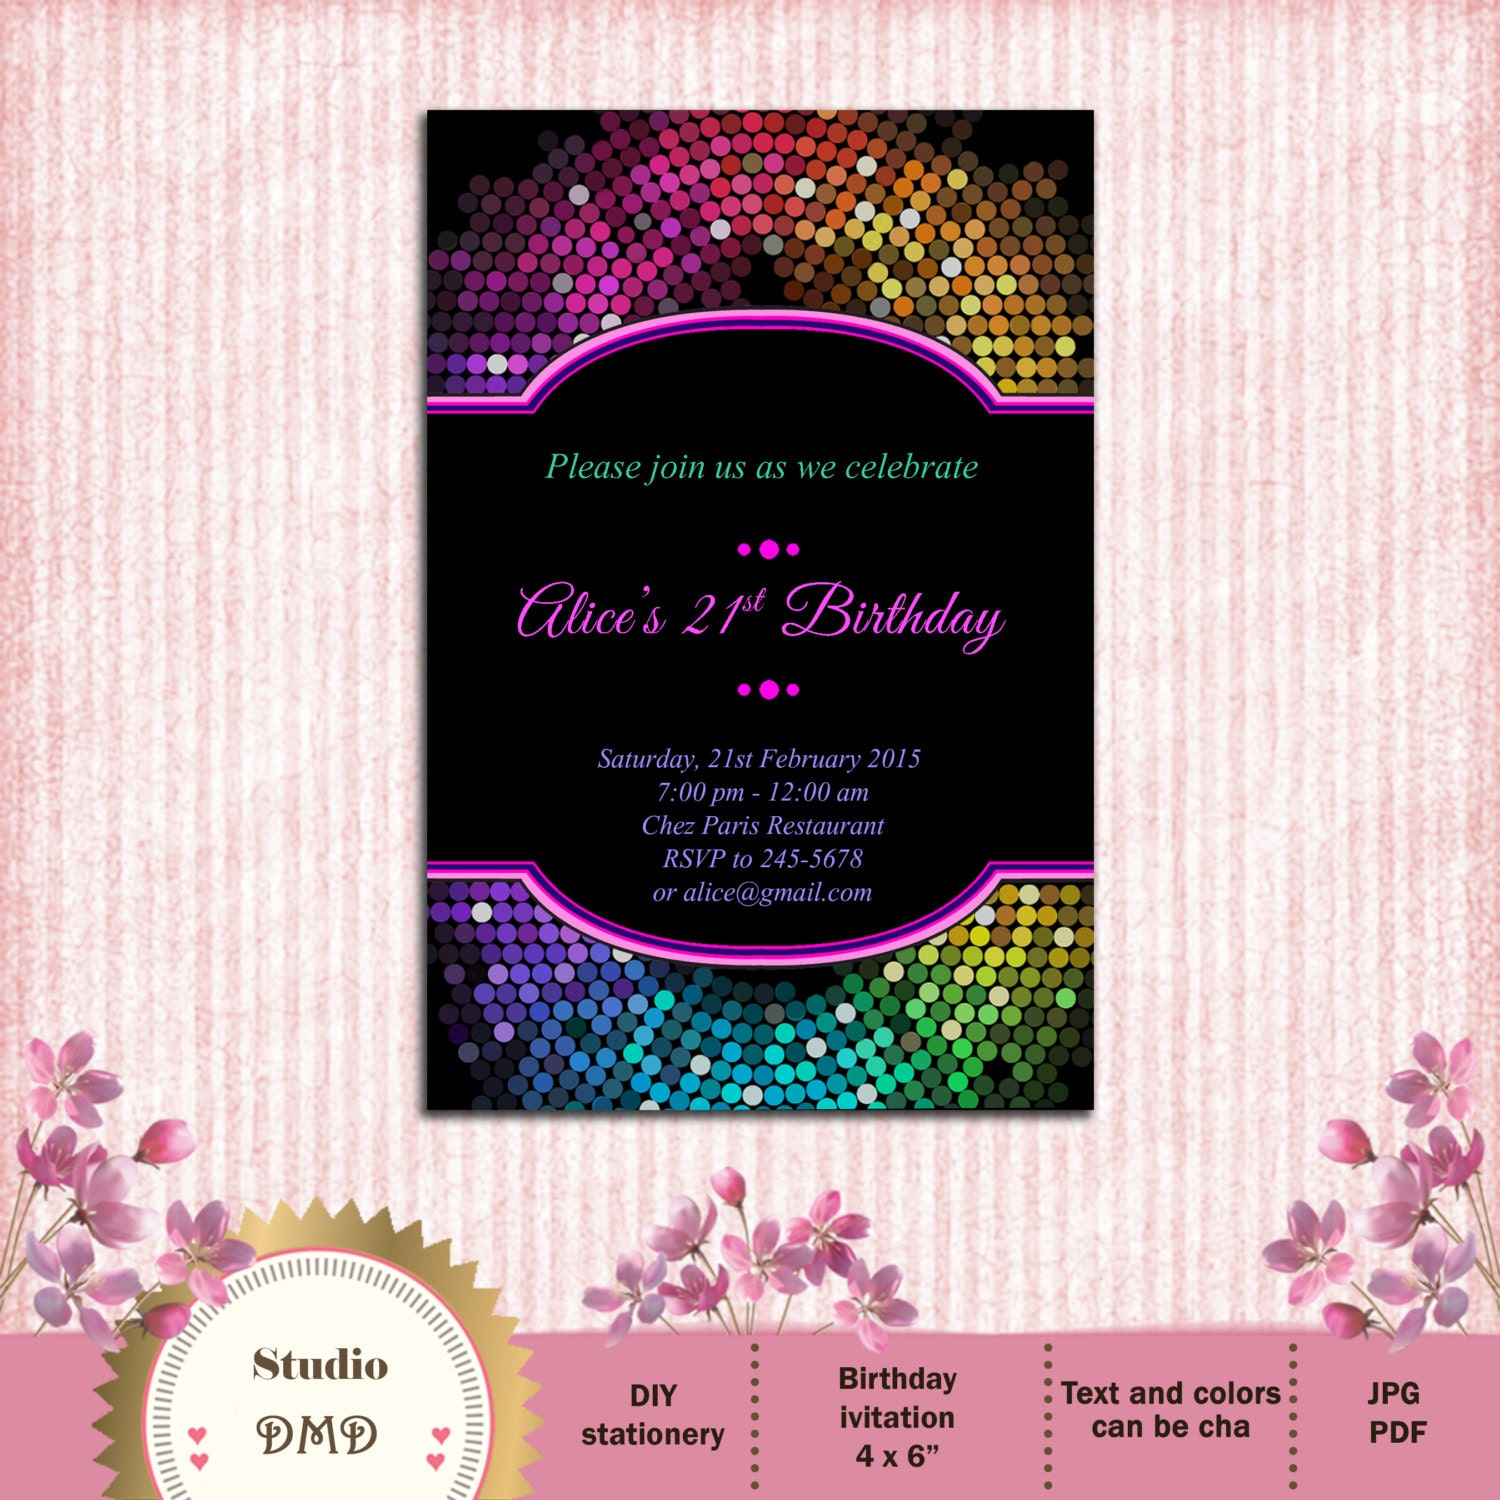 13th birthday invite – Invitations for 13th Birthday Party